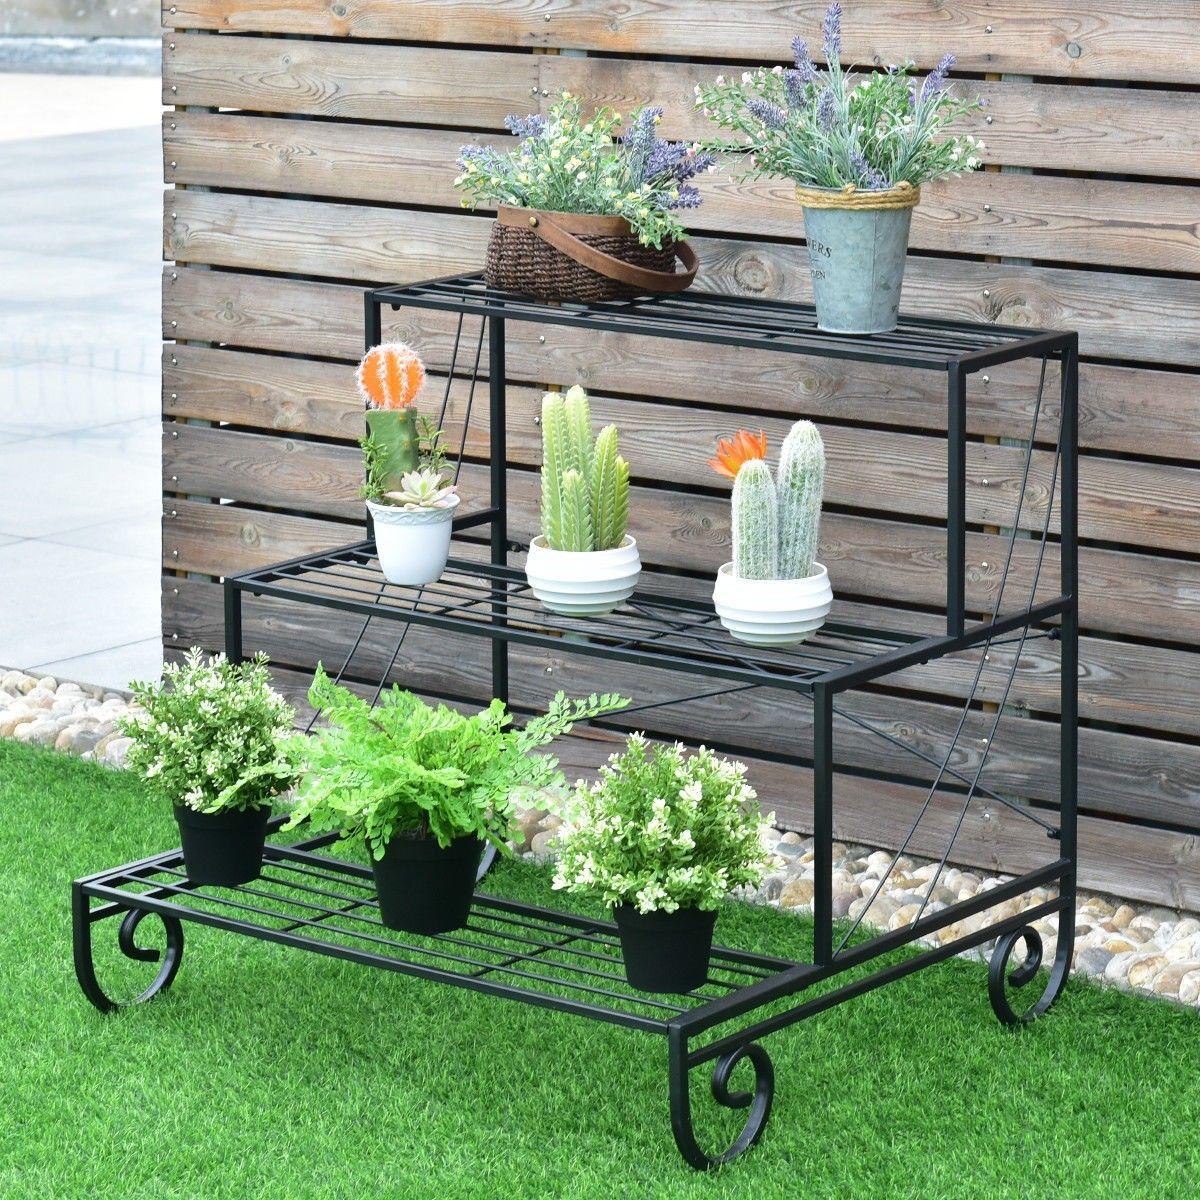 3 Tier Outdoor Metal Garden Planter Holder Shelf Plant Stands